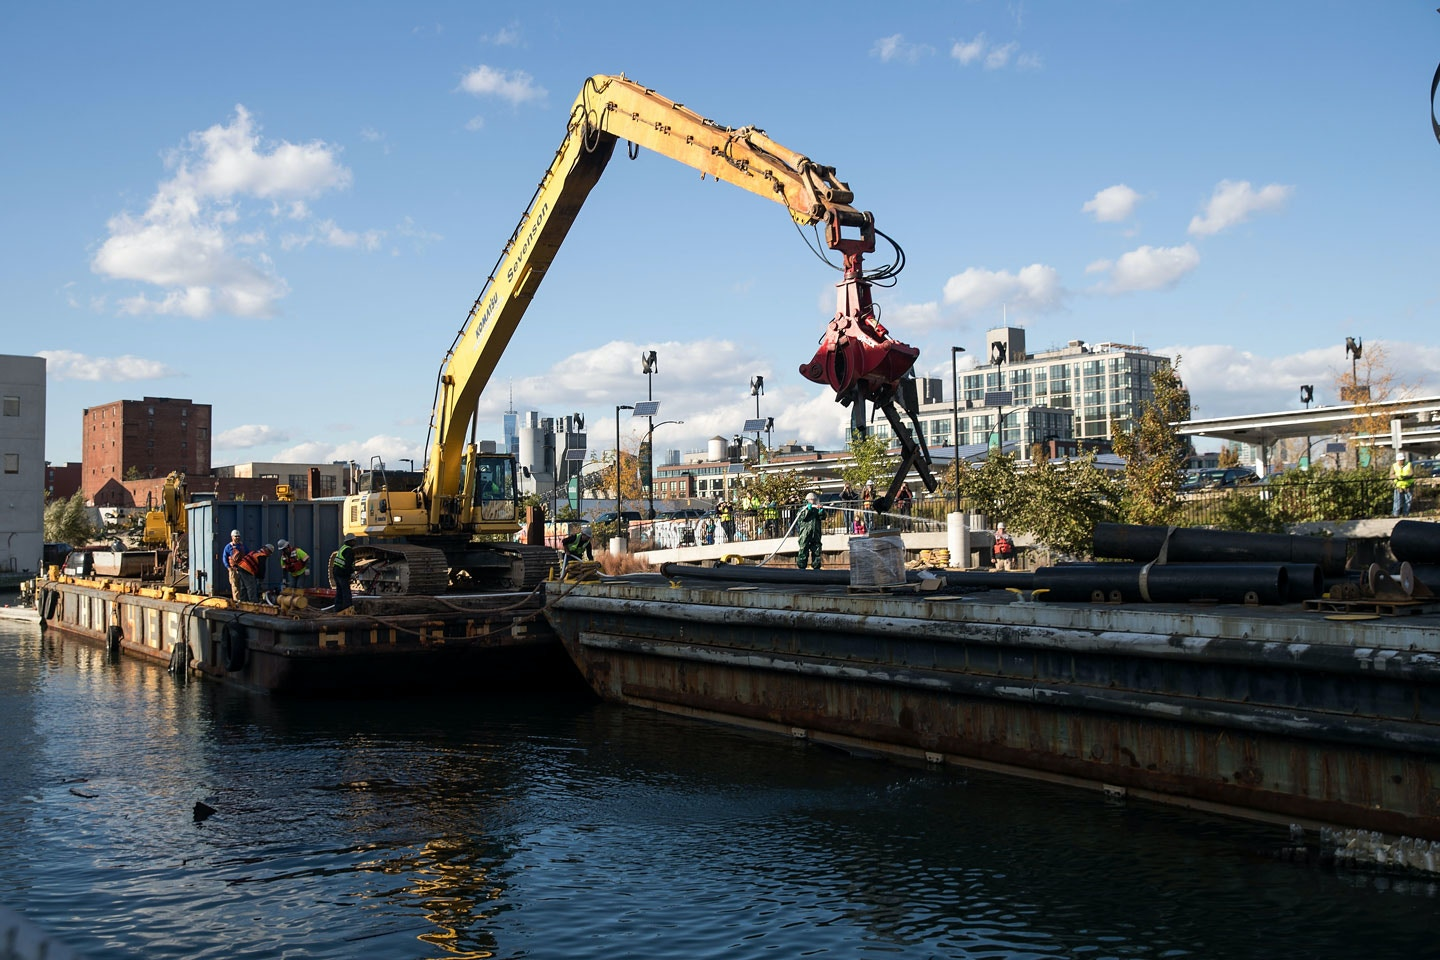 NEW YORK, NY - OCTOBER 24: A work crew contracted by the Environmental Protection Agency removes debris from the Gowanus Canal, October 24, 2016 in the Brooklyn borough of New York City. Formerly a bustling transportation and shipping route, the Gowanus Canal is now listed as one of the most polluted bodies of water in the United States. In 2010, the Gowanus Canal was declared a Superfund cleanup site by the U.S. Environmental Protection Agency. (Photo by Drew Angerer/Getty Images)